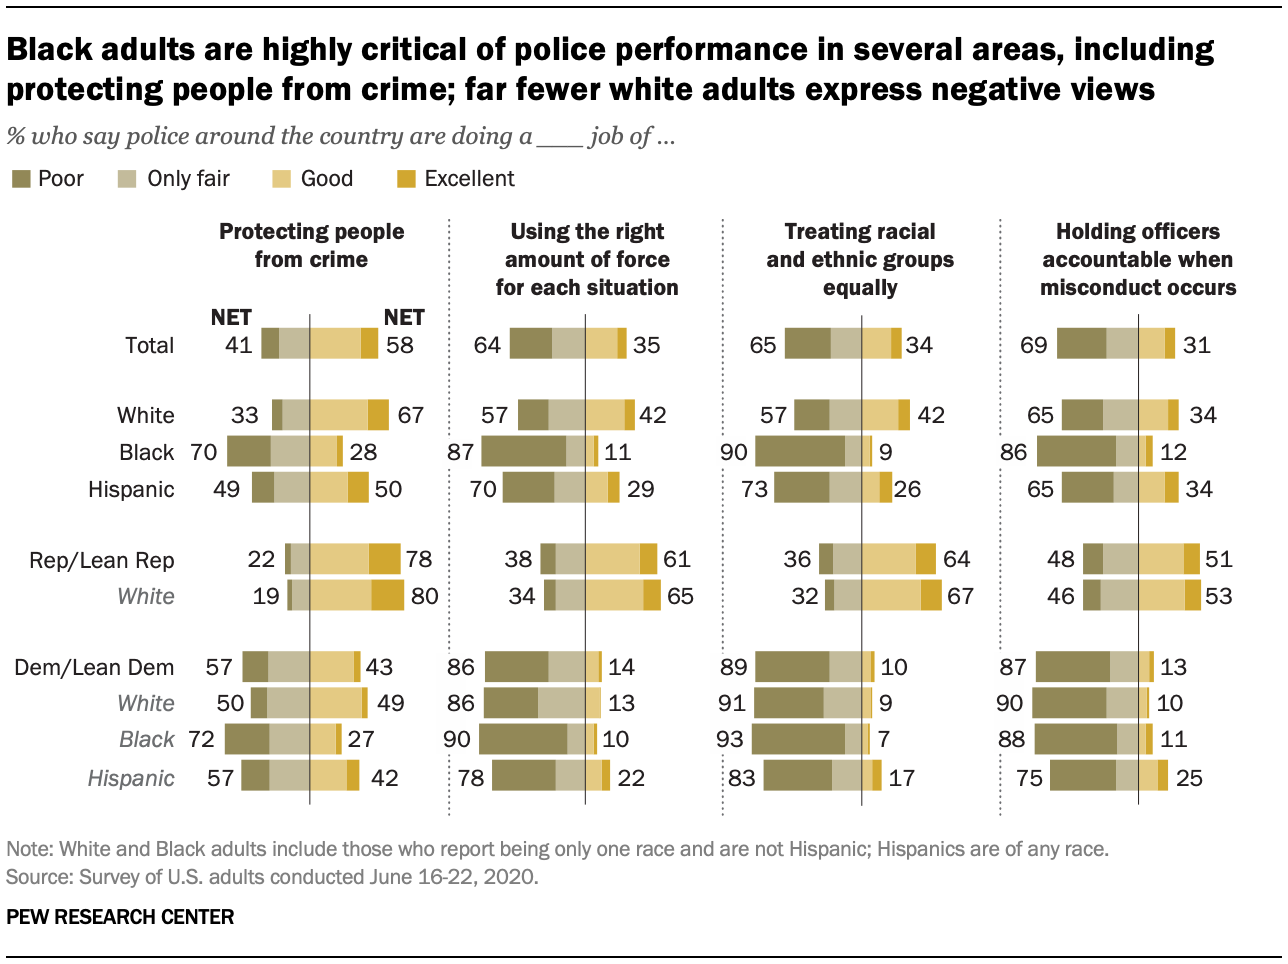 Black adults are highly critical of police performance in several areas, including protecting people from crime; far fewer white adults express negative views